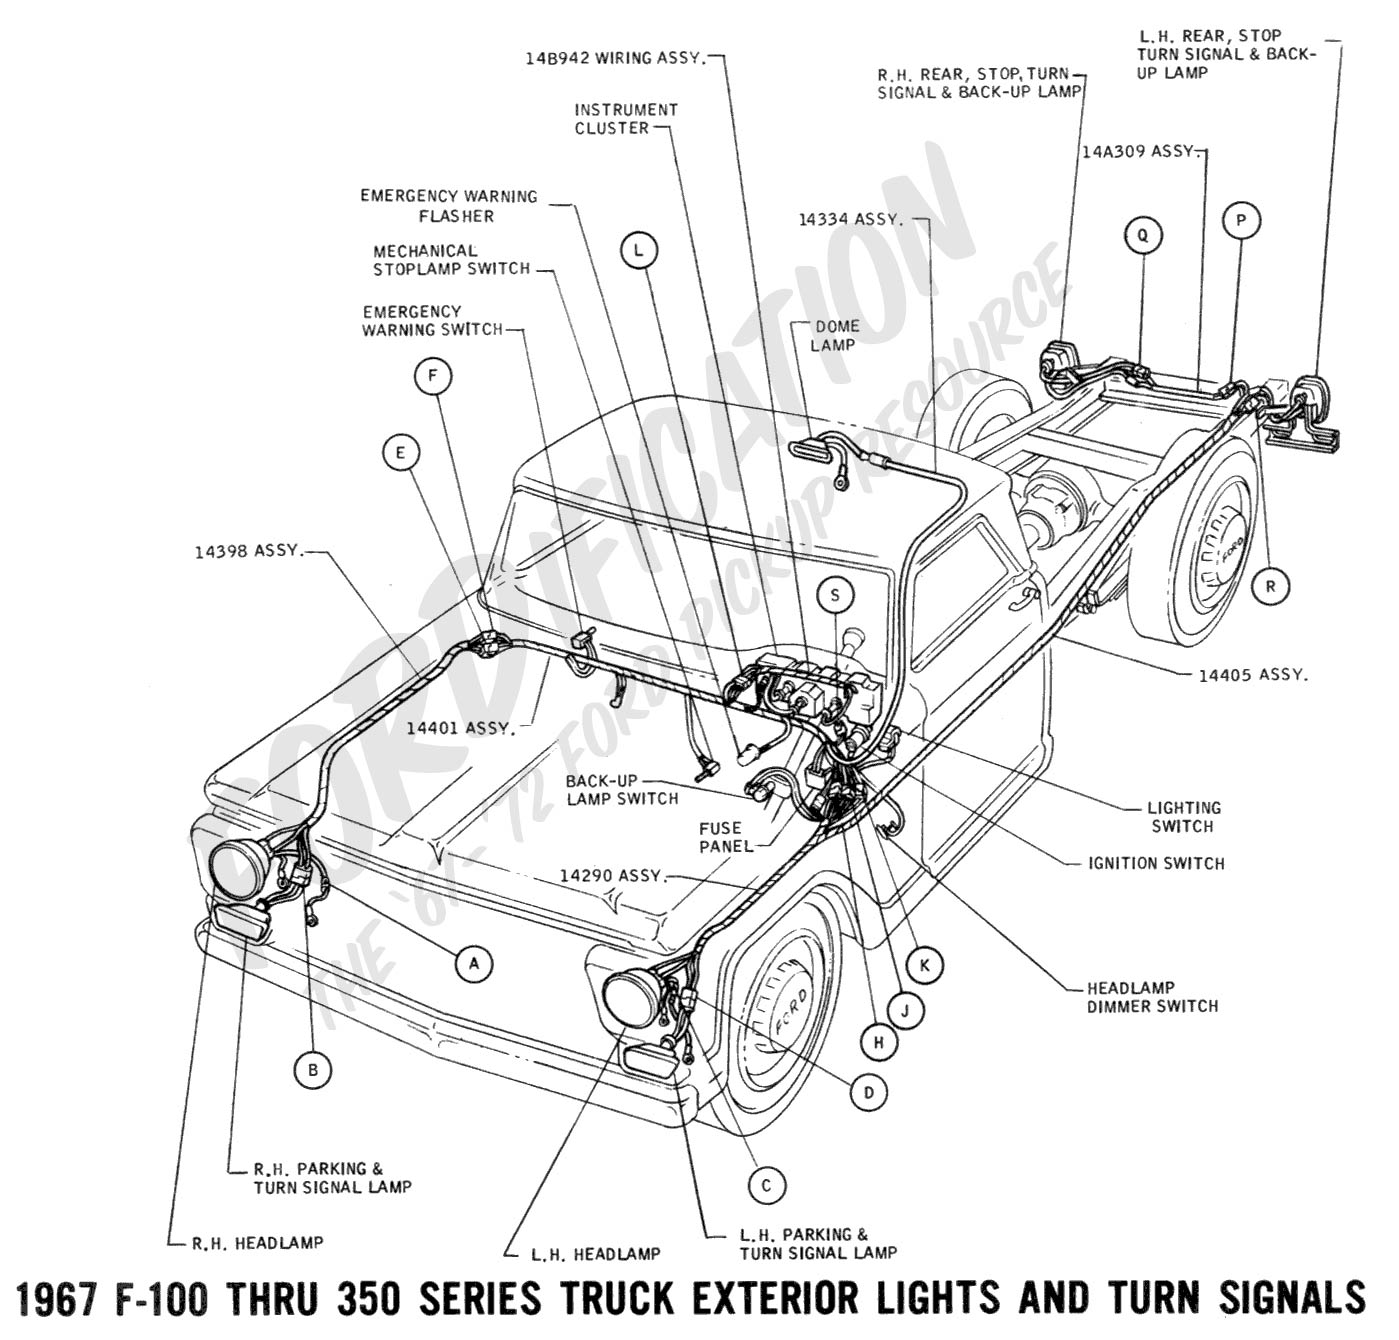 85 f150 heater wiring diagram wiring harness diagram for 1985 f150 wiring discover your wiring wiring diagrams 1990 toyota pickup wiring 95 f150 wiper